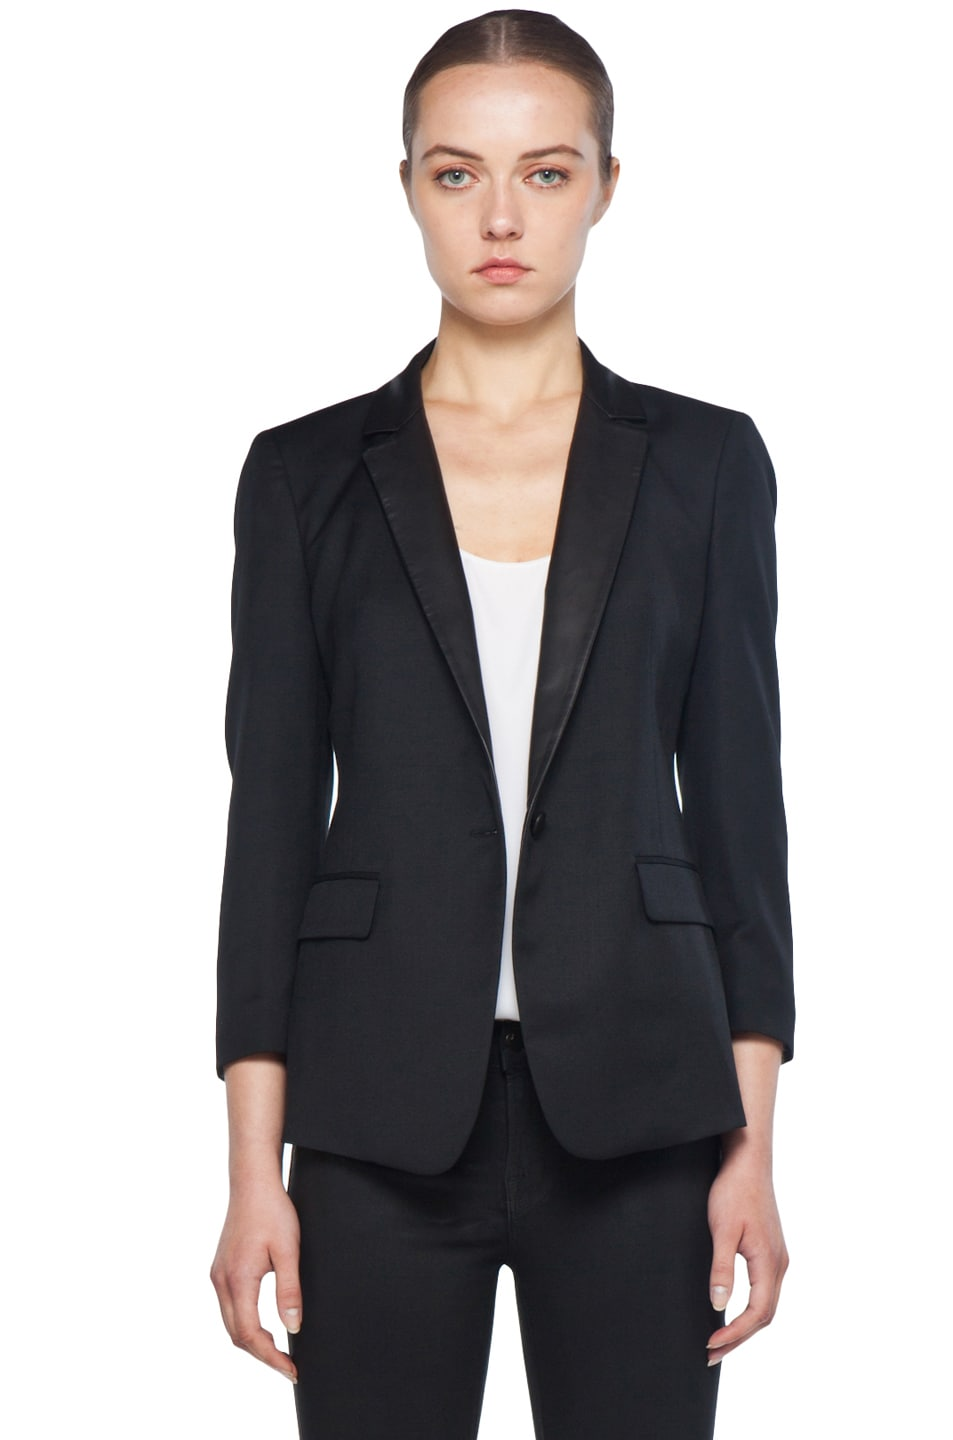 Image 1 of Boy Rope Shoulder Jacket with Leather Lapels in Black